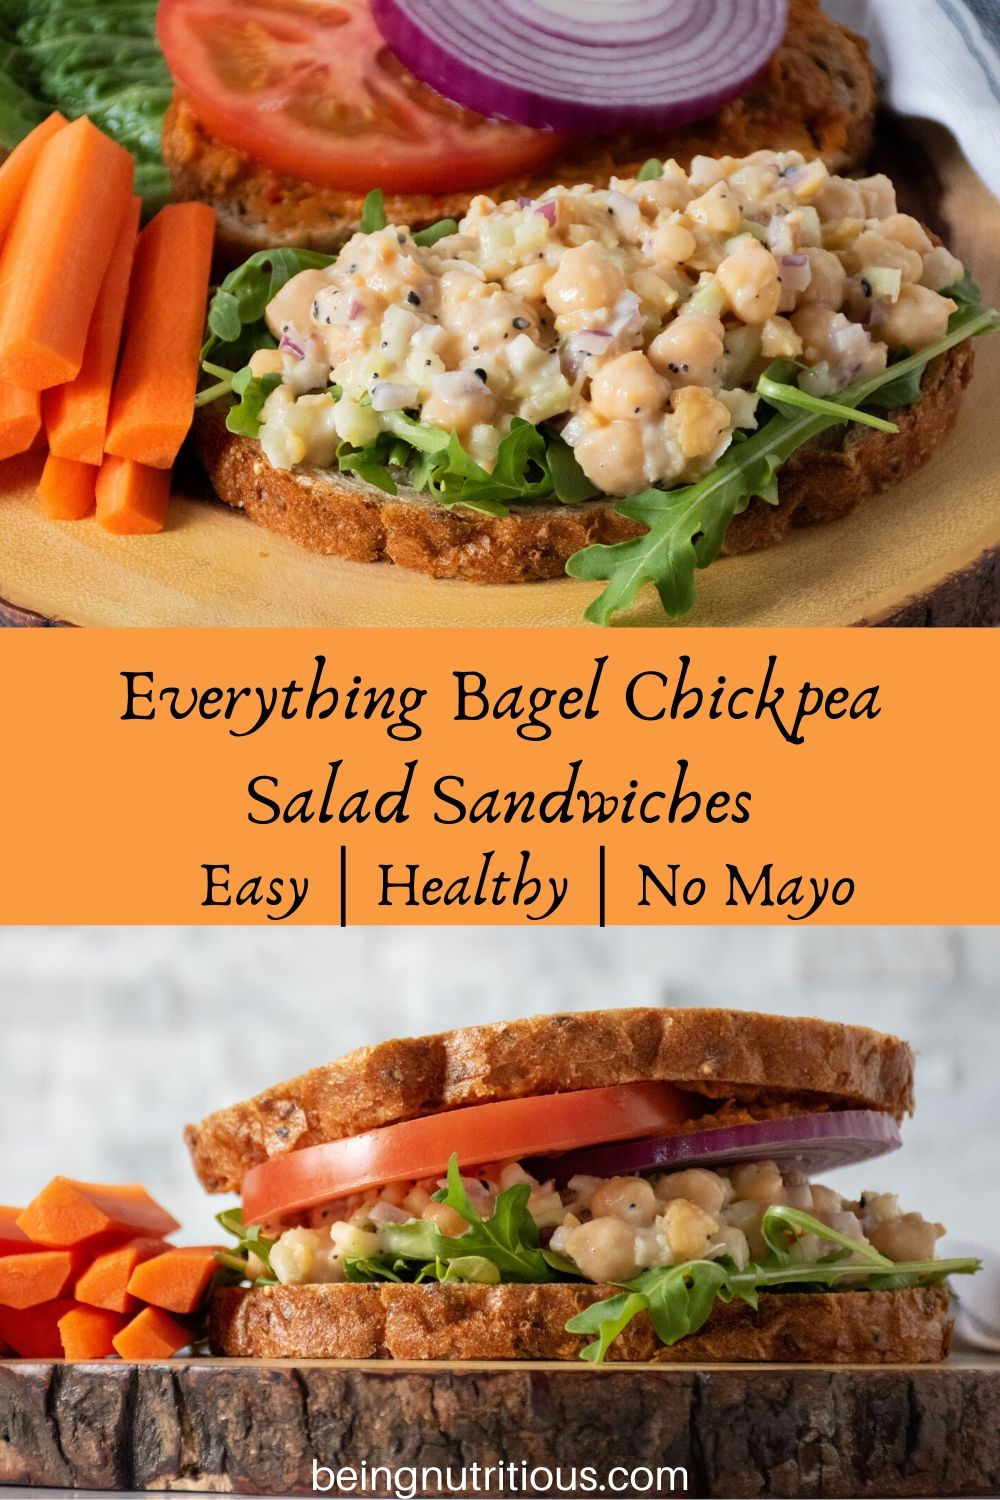 Everything Bagel Chickpea Salad Sandwiches